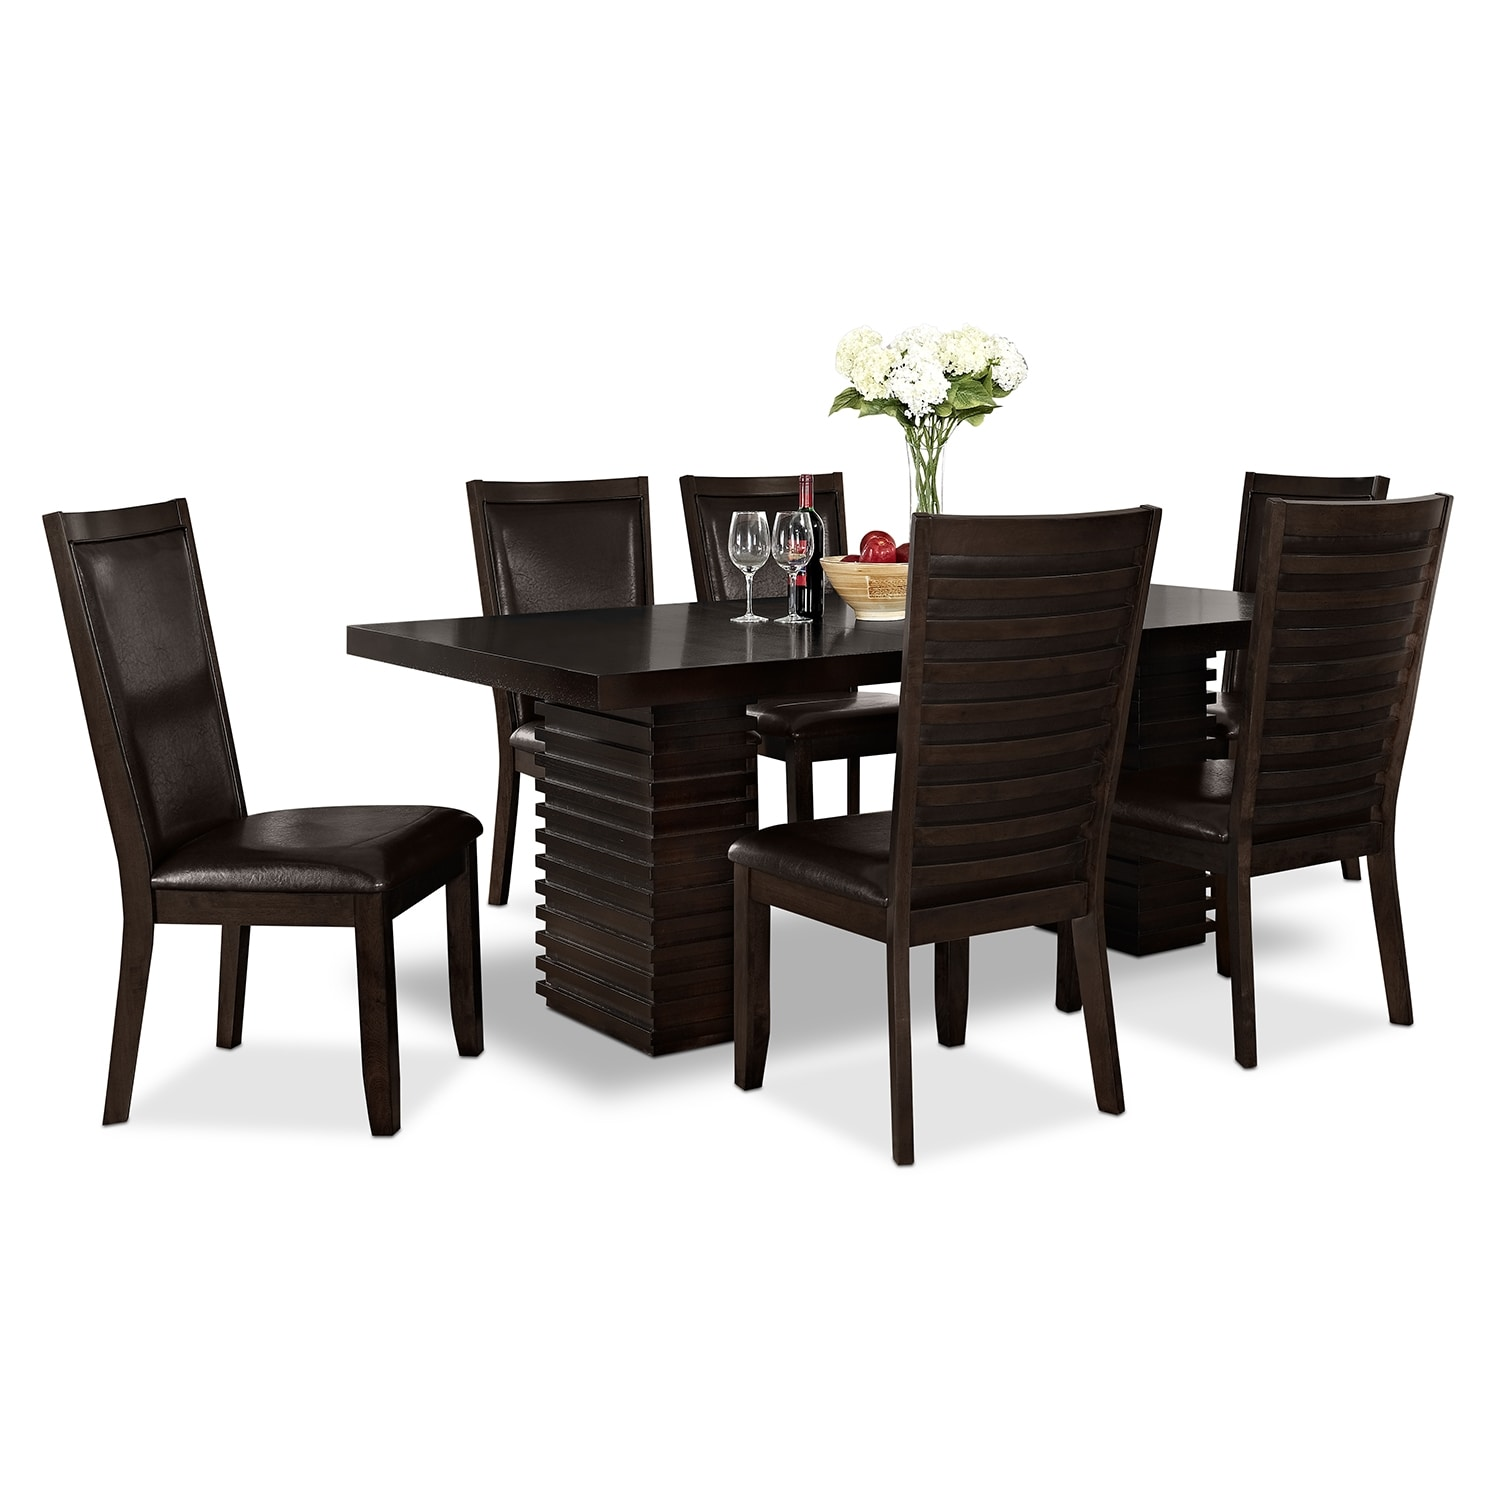 Paragon II 7 Pc. Dinette